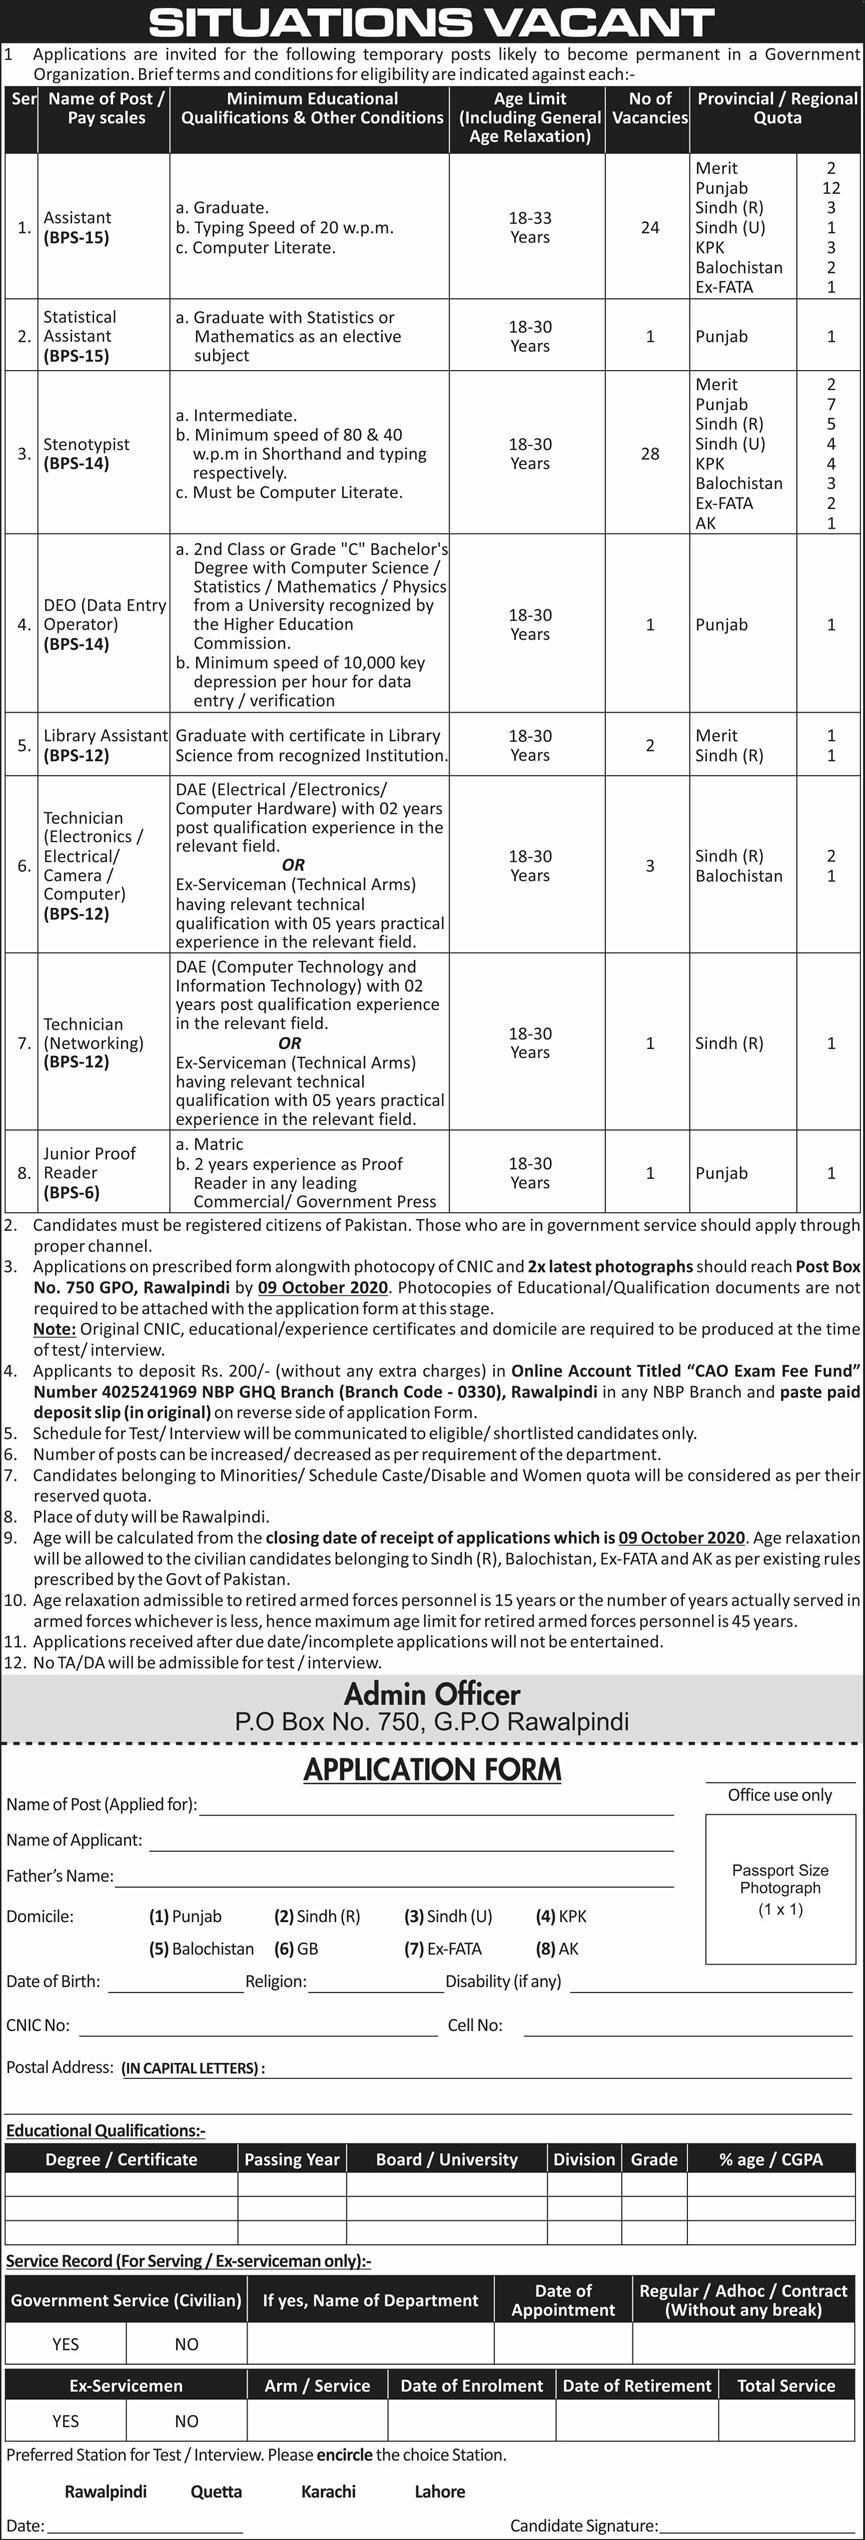 Situation Vacant in General Head Quarter (GHQ) Rawalpindi